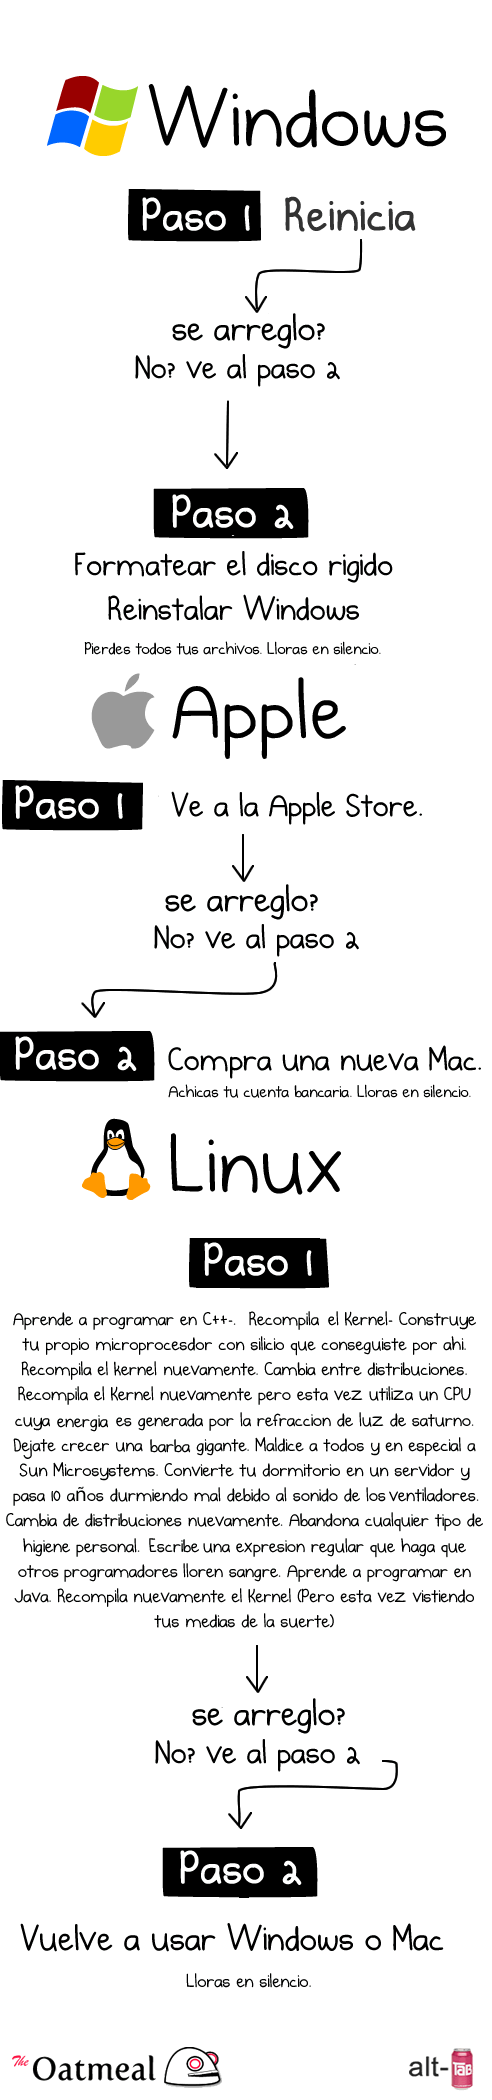 Arreglar una PC con Windows, Mac o Linux